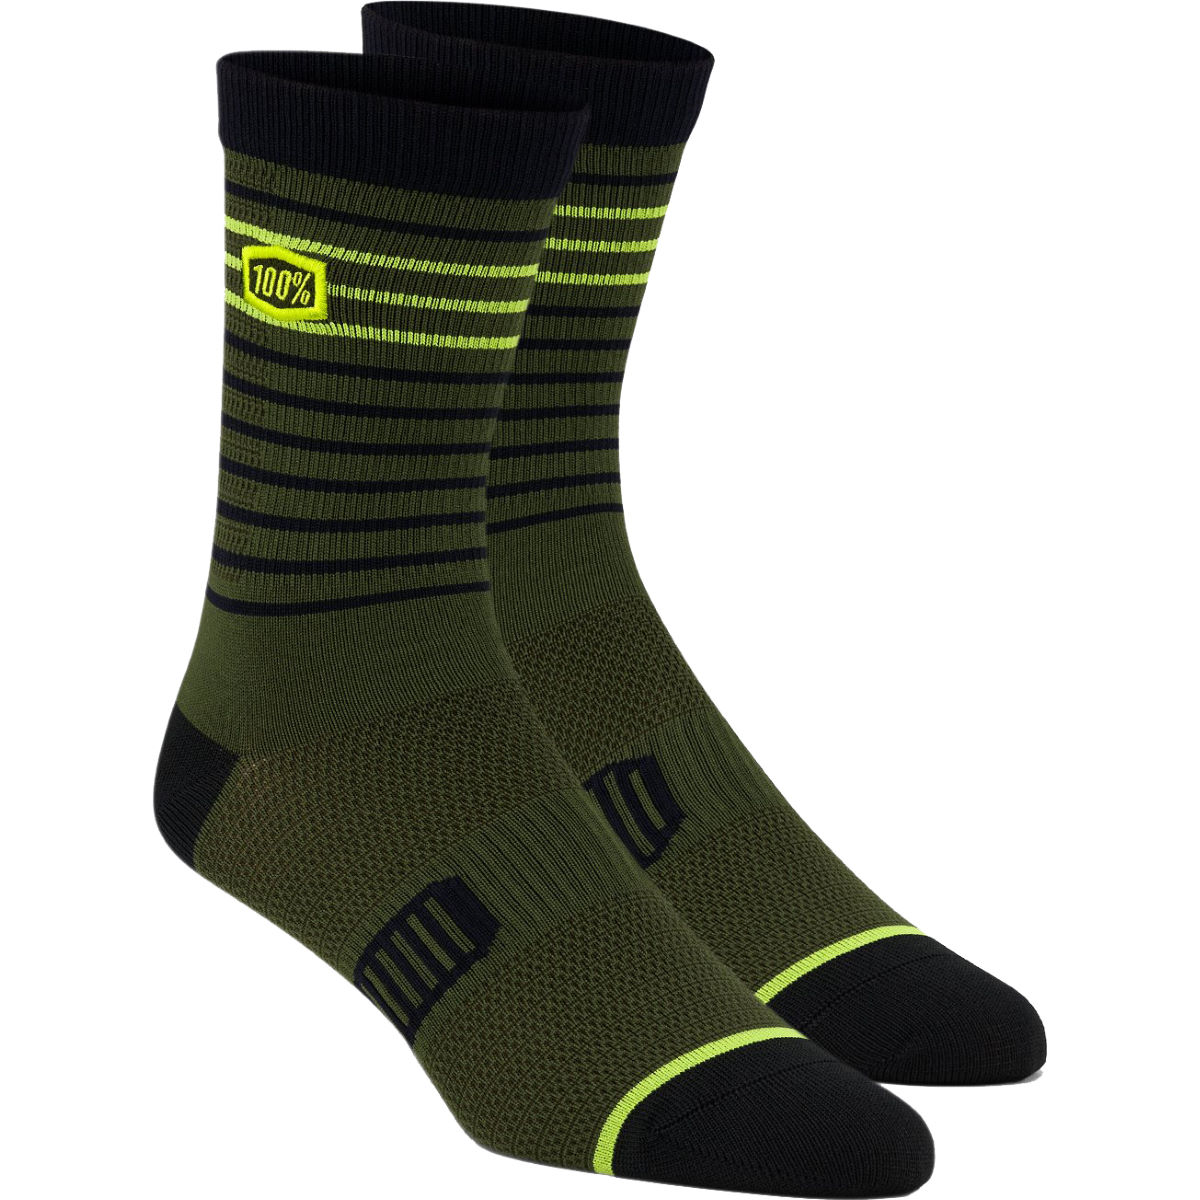 100% Advocate Performance Socks - S/m Fatigue  Socks